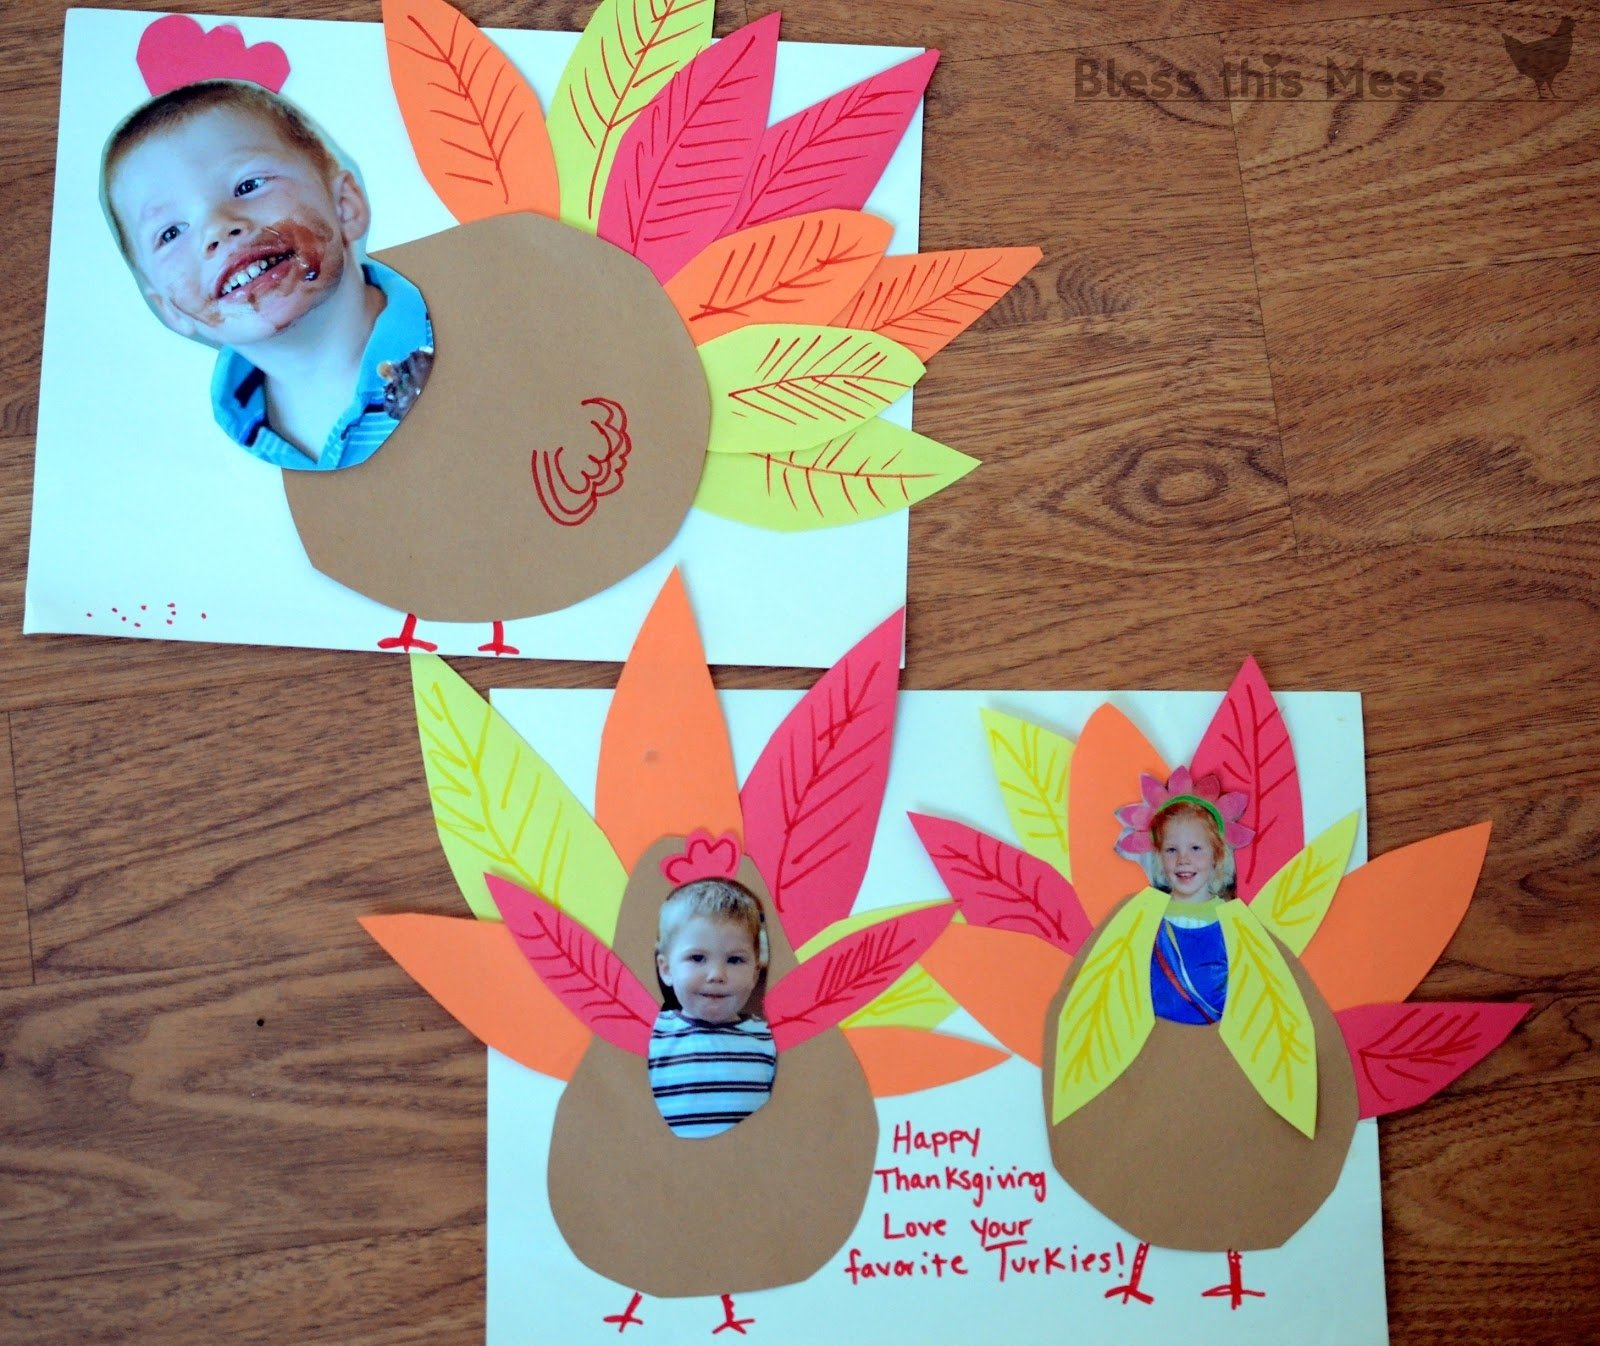 10 Best Thanksgiving Craft Ideas For Preschoolers 5 easy turkey crafts for kids bless this mess 1 2020